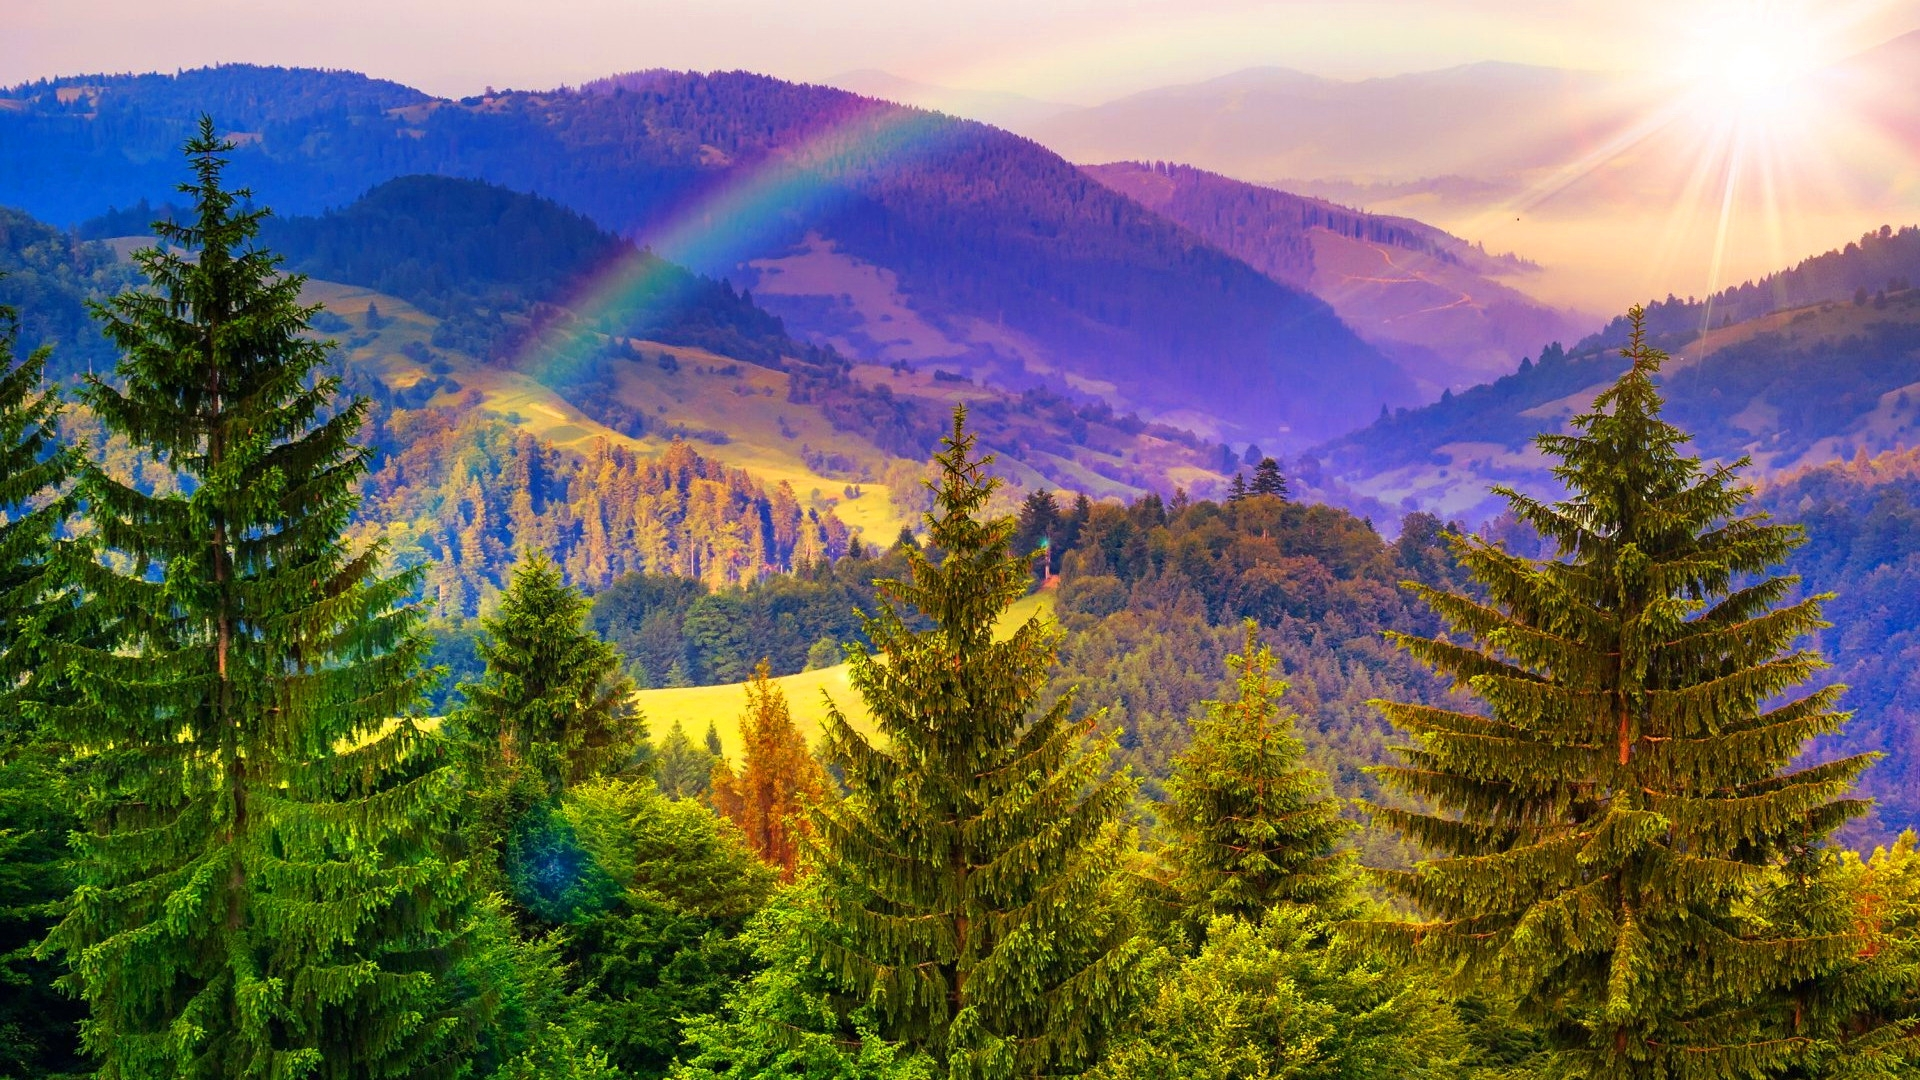 Fall Iphone 7 Plus Wallpaper Rainbow Over Mountains Hd Wallpaper Background Image